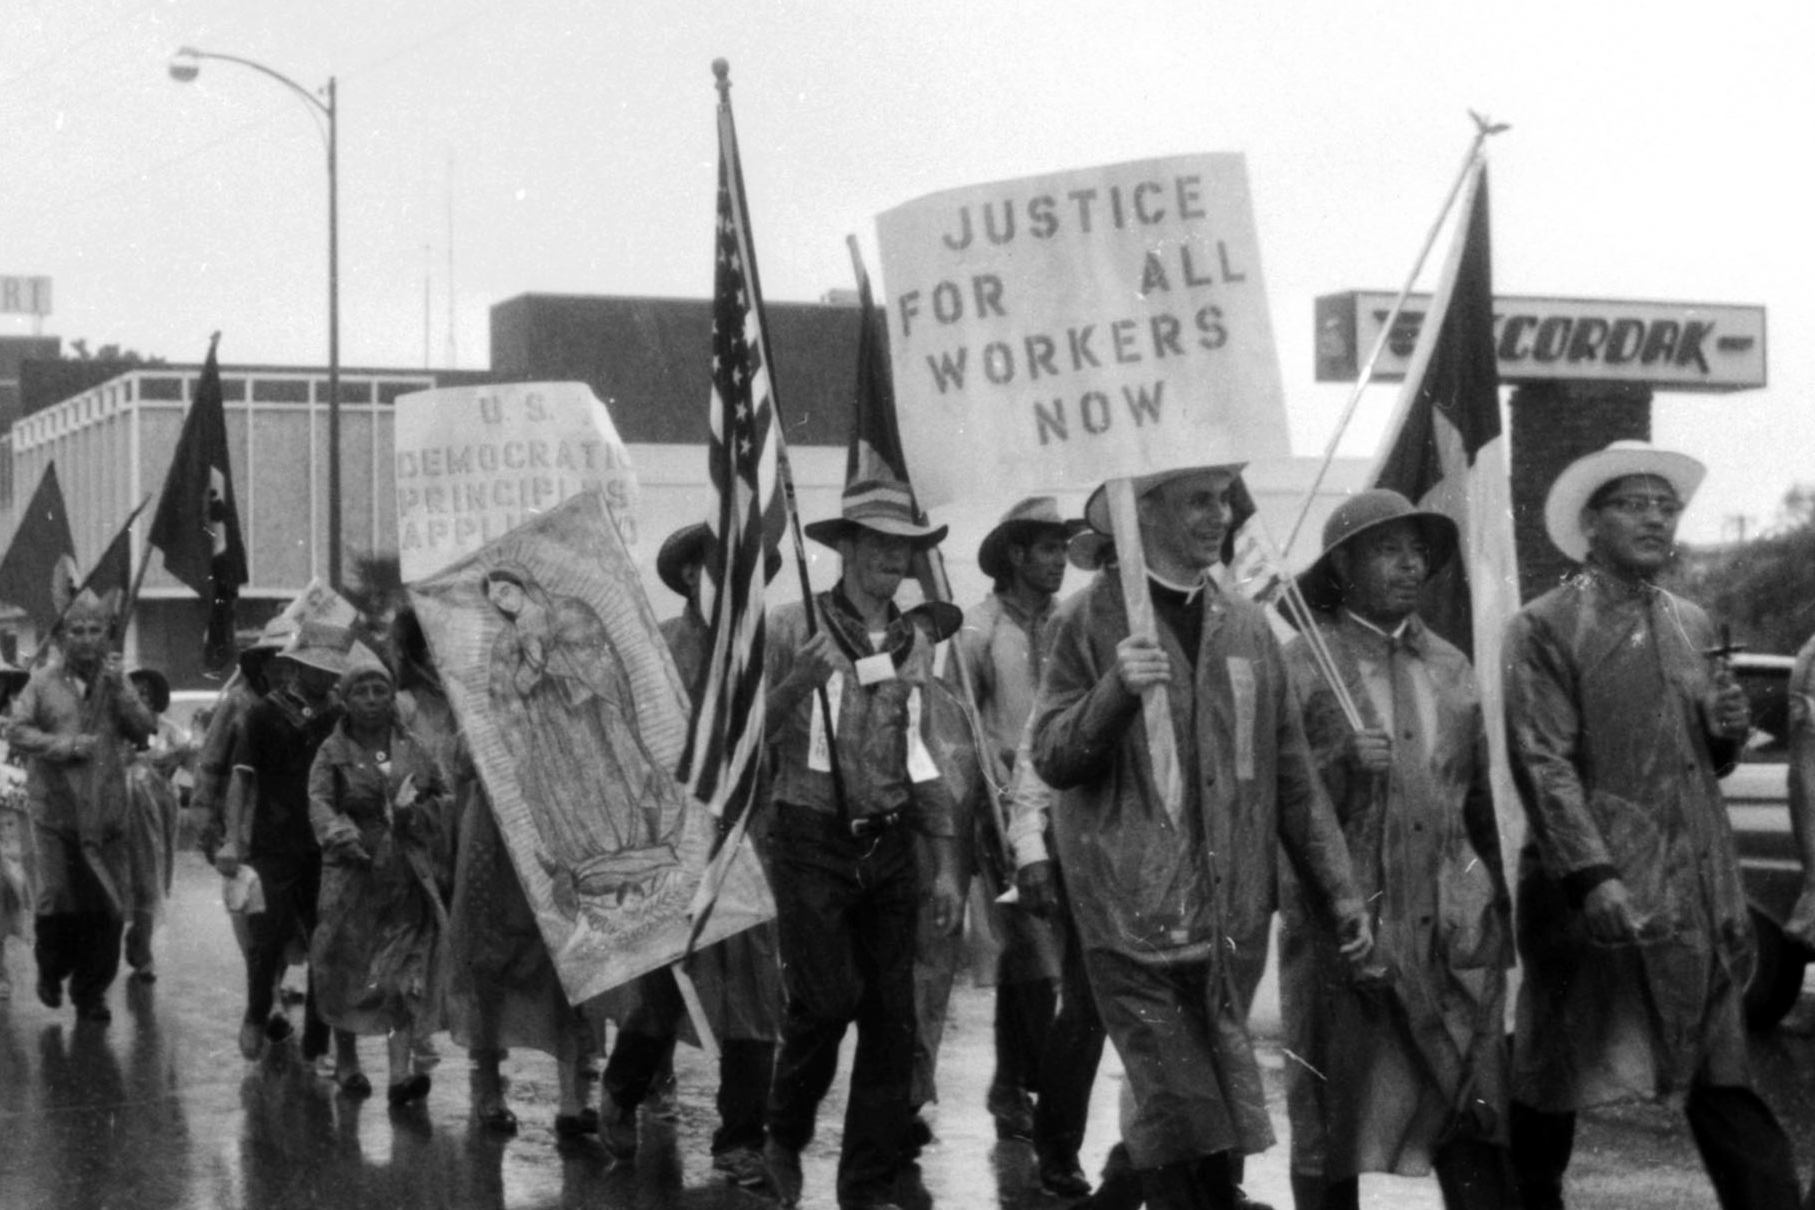 People, many wearing cowboy hats, carry flags and signs. One sign says Justice for All Workers Now. Another sign shows an image of the Virgin Mary.